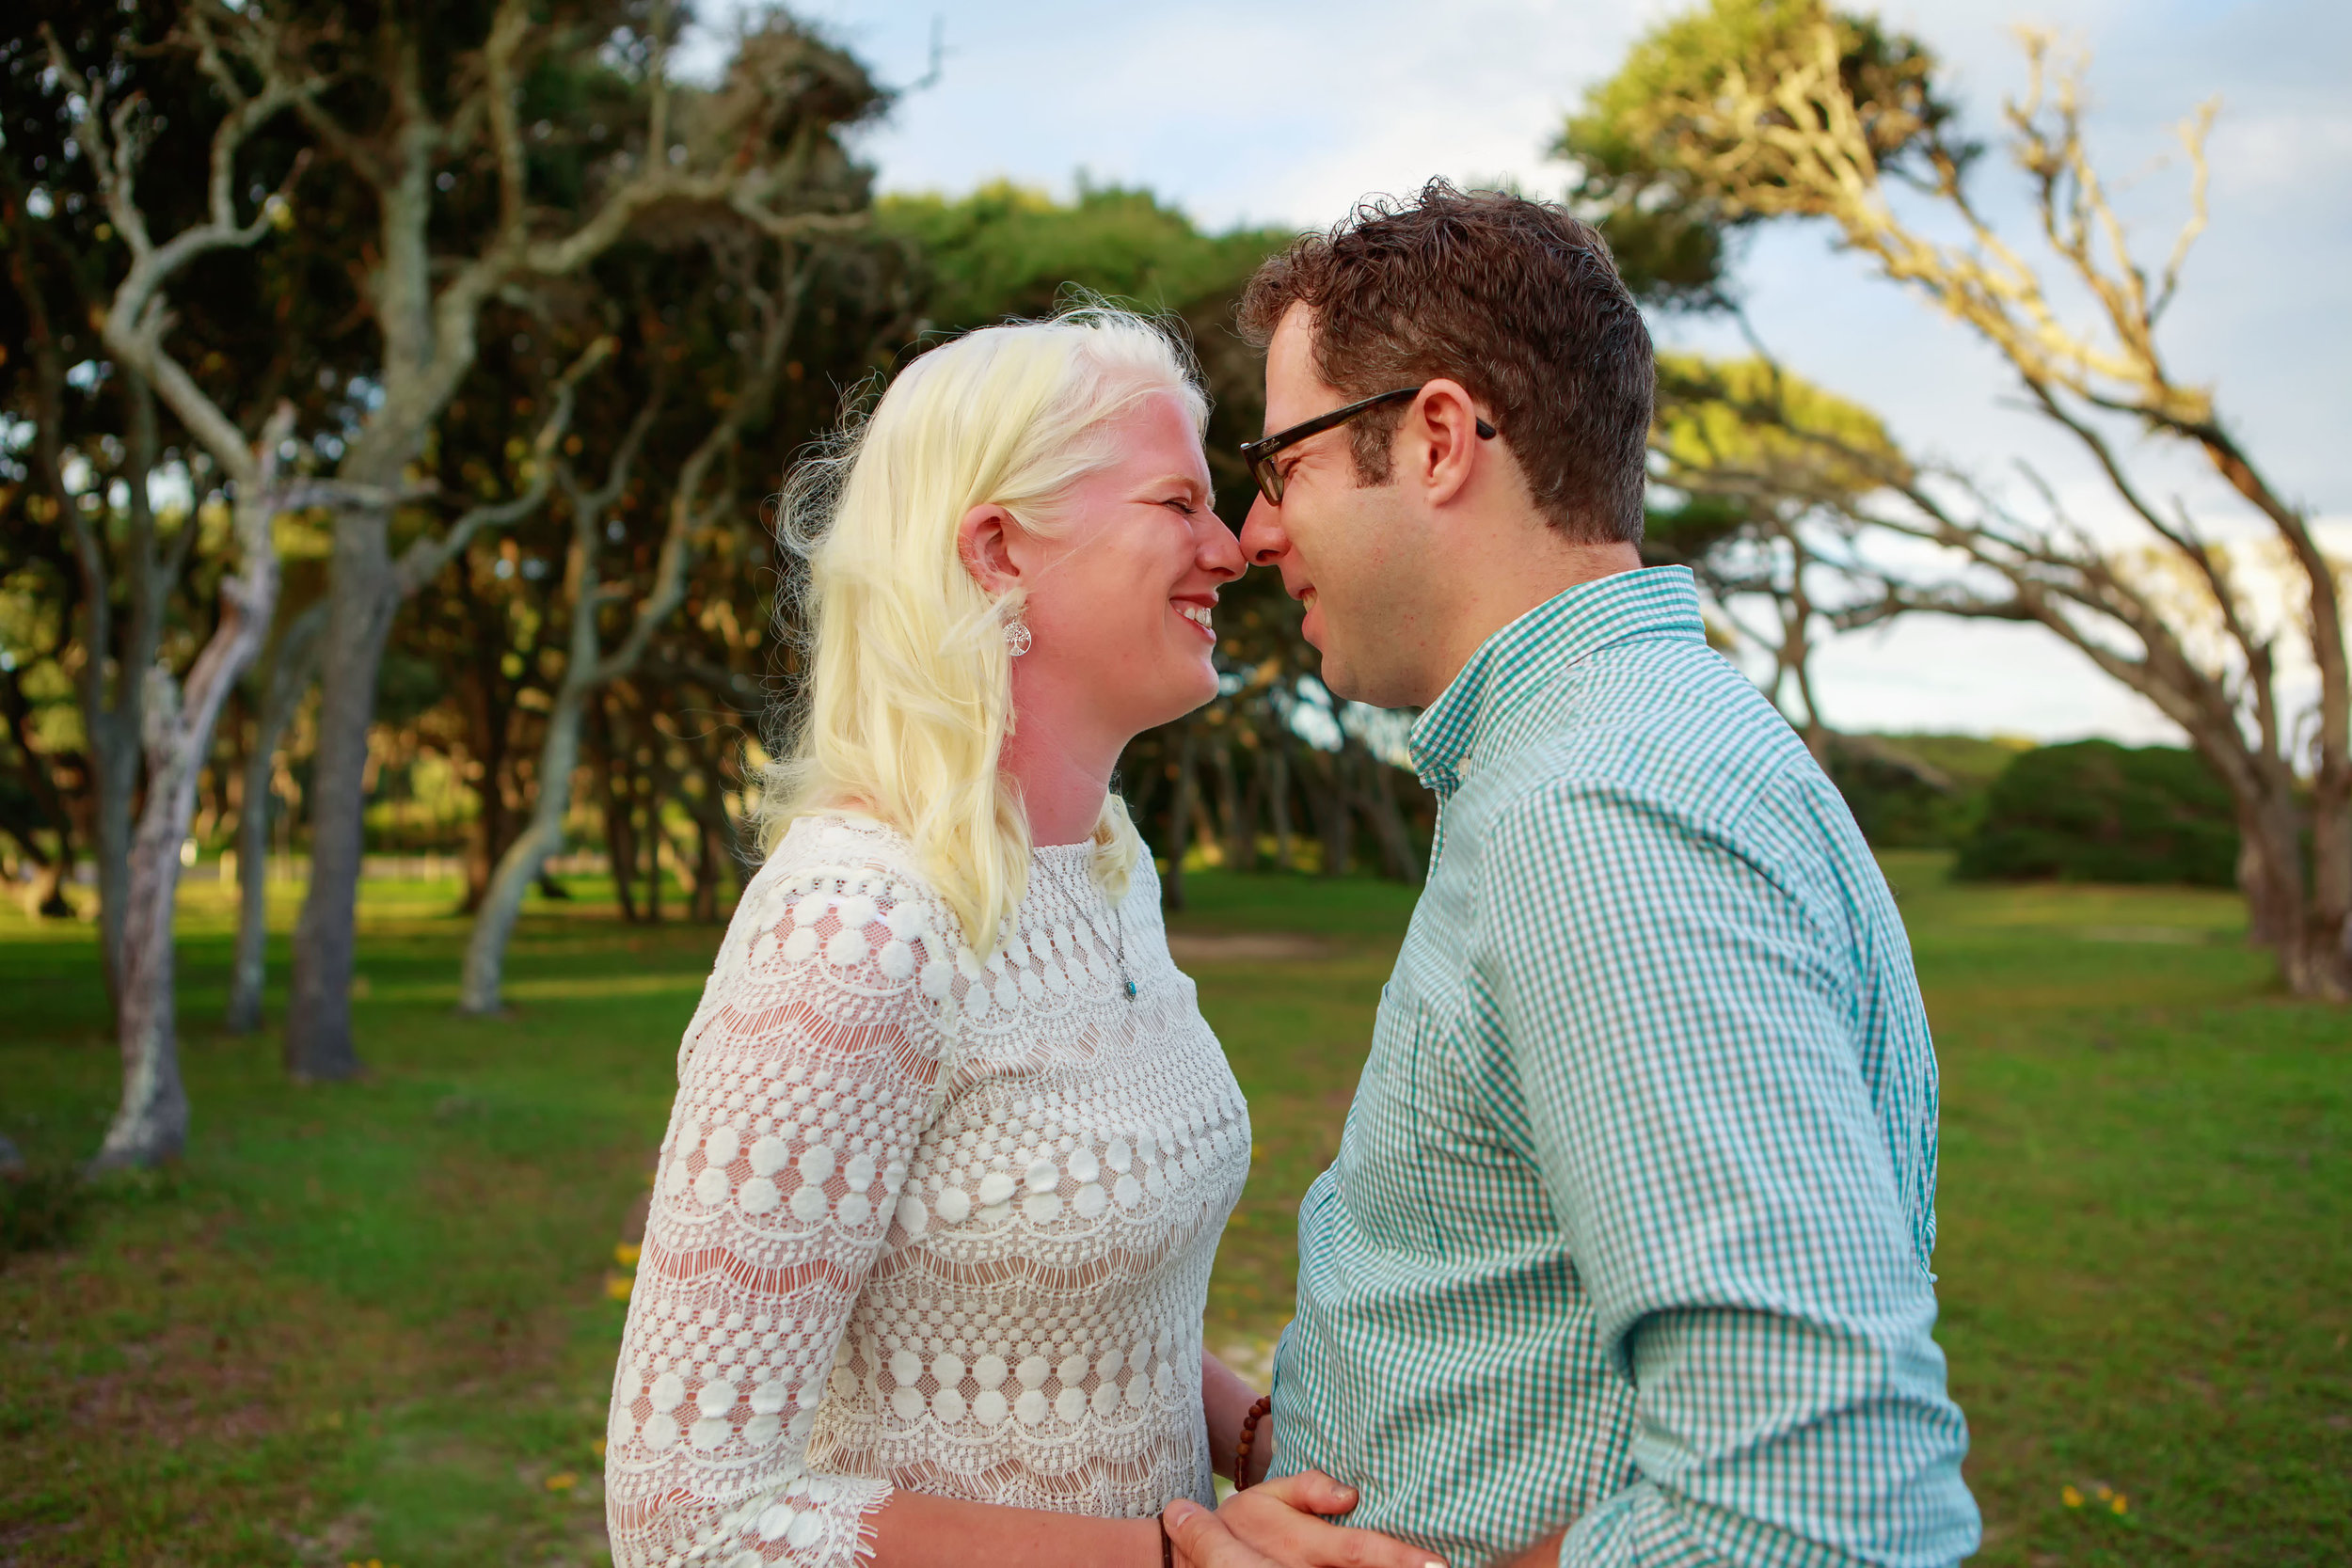 Fort_Fisher_Photographer_Engagement_Tiffany_Abruzzo_Photography_3.jpg